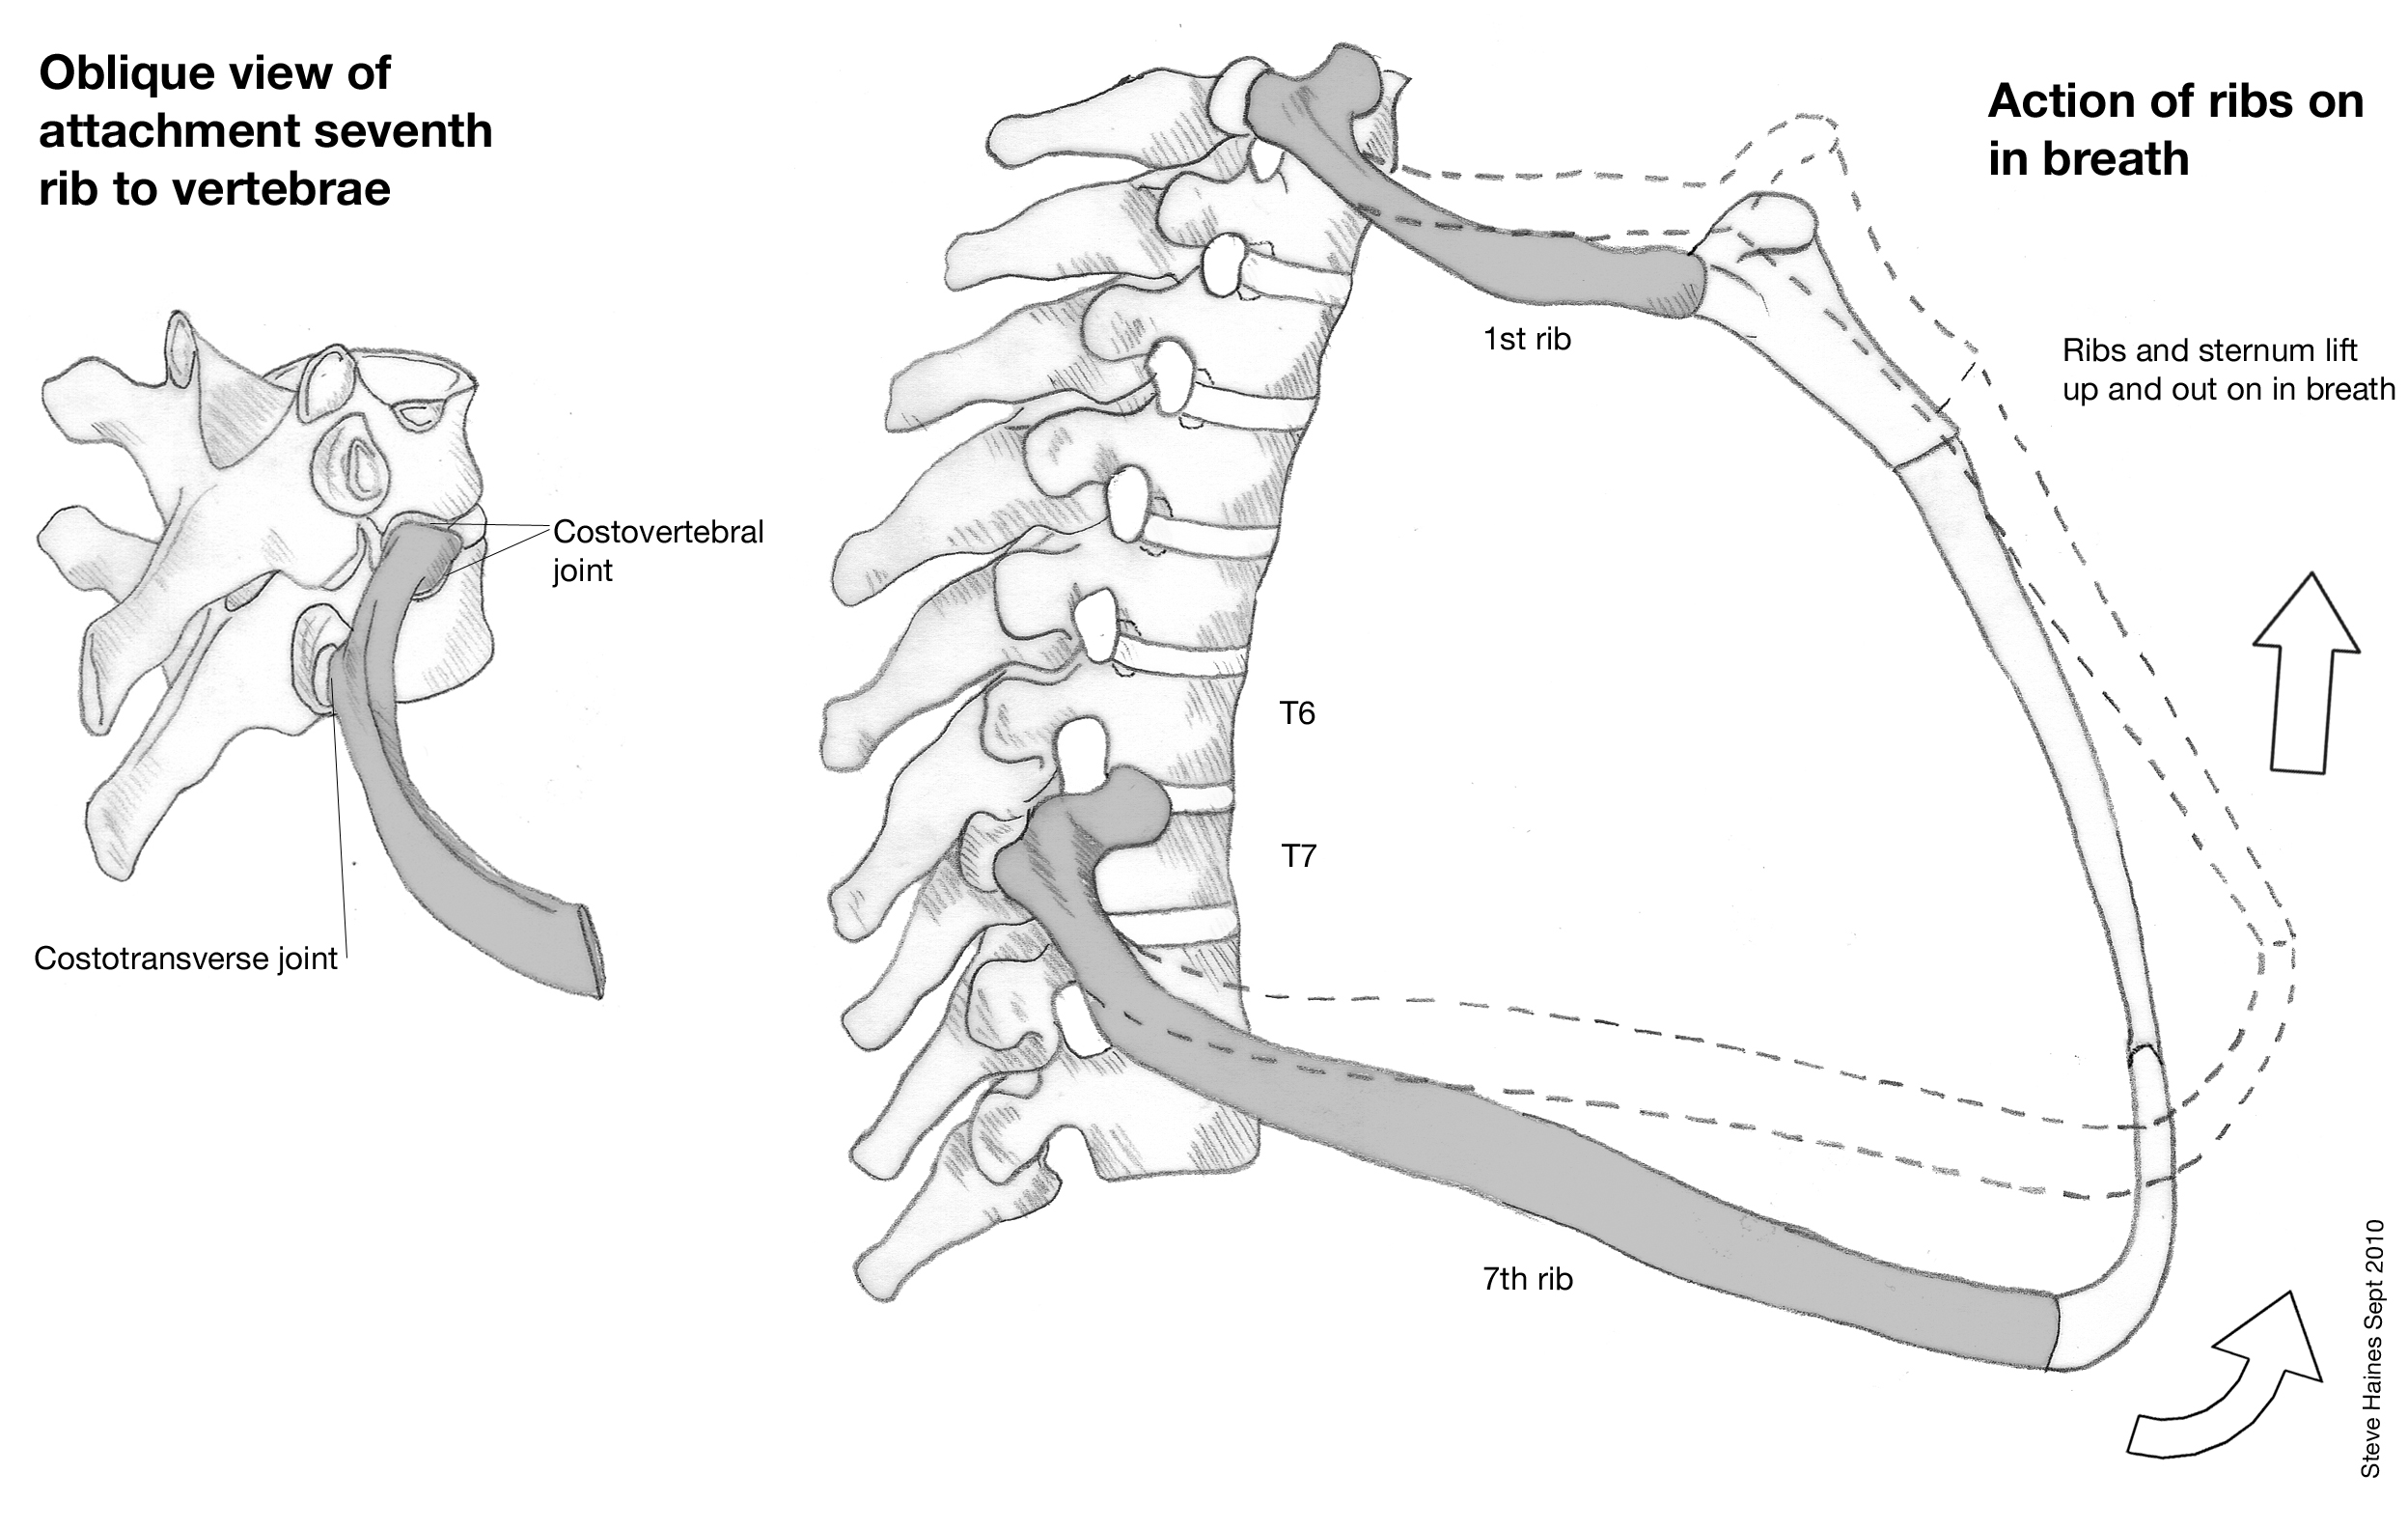 typical thoracic vertebrae diagram directv swm 3 wiring the ribs and some sutherland biomechanics cranial